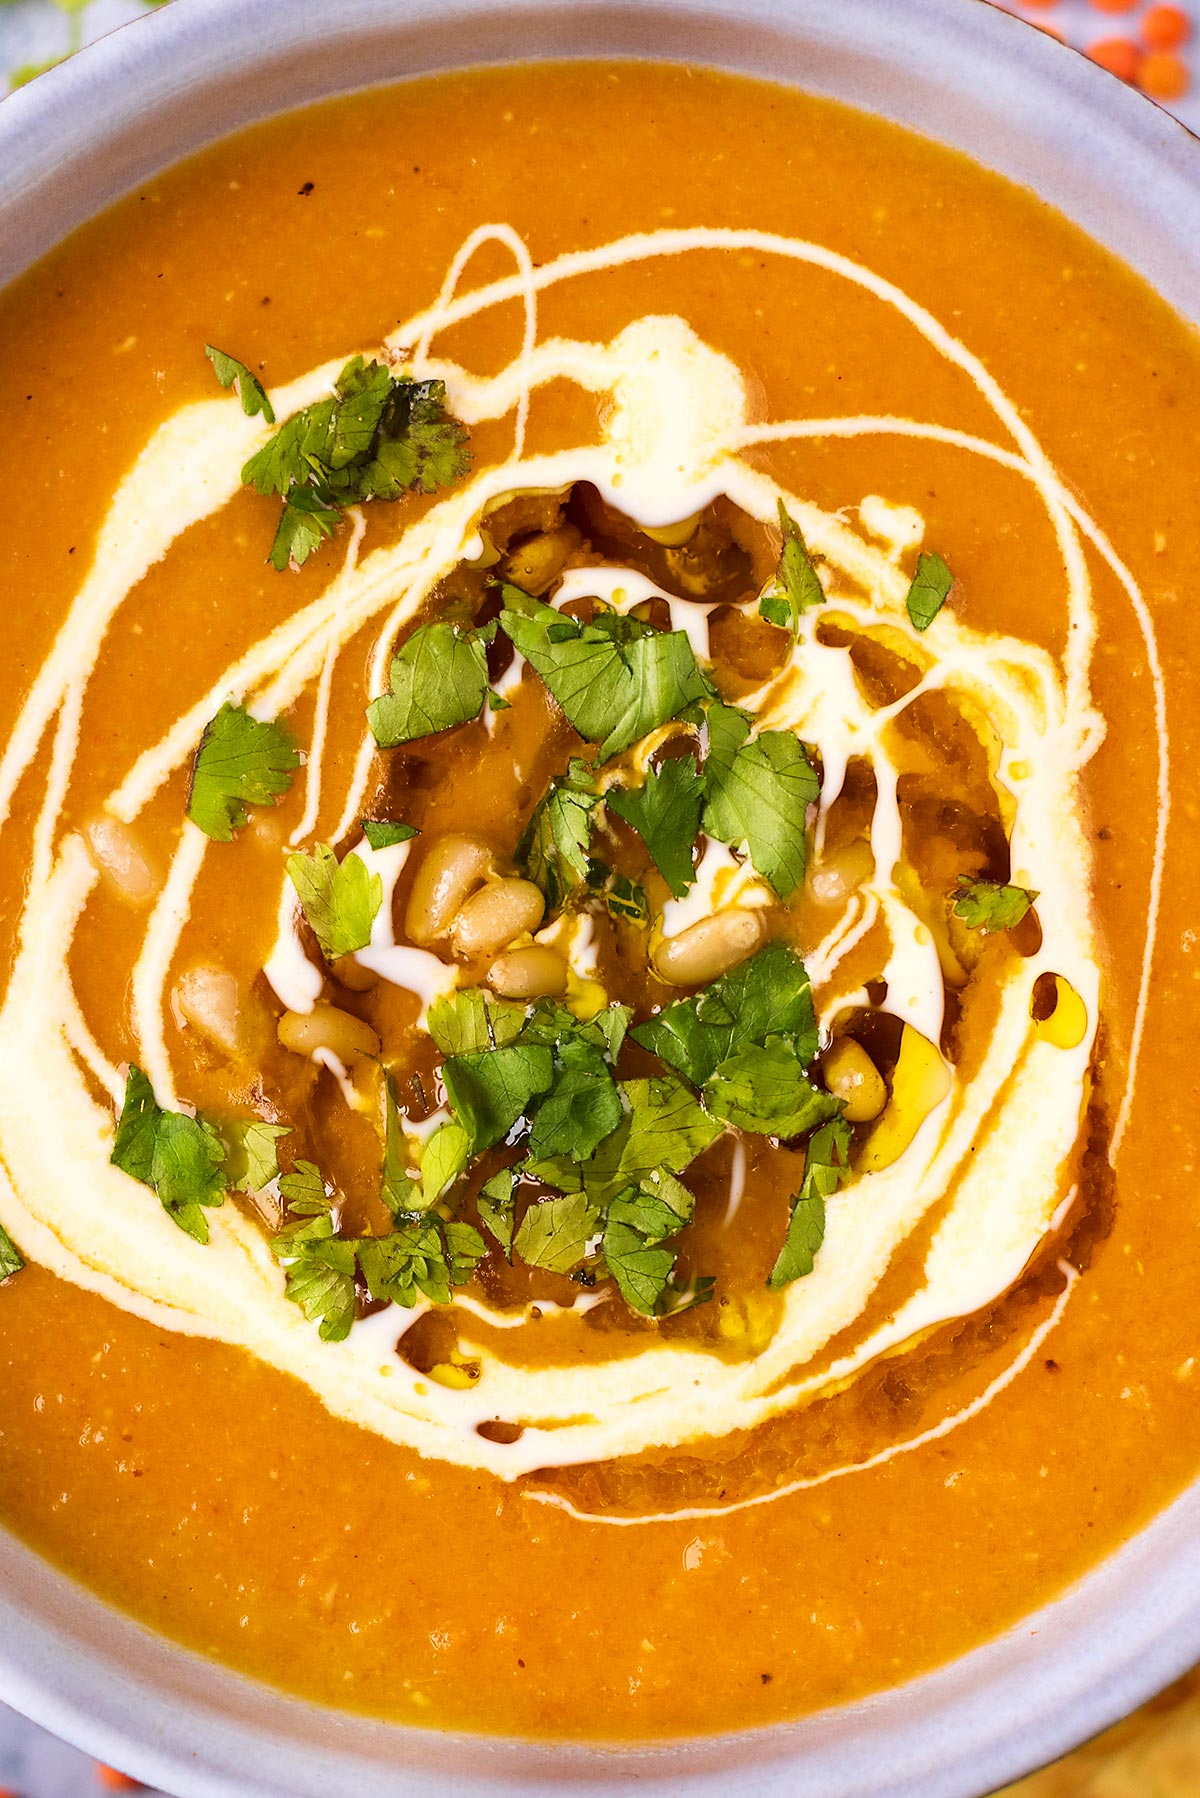 A bowl or red soup with a swirl of cream, some shopped herbs, a drizzle of oil and some pine nuts